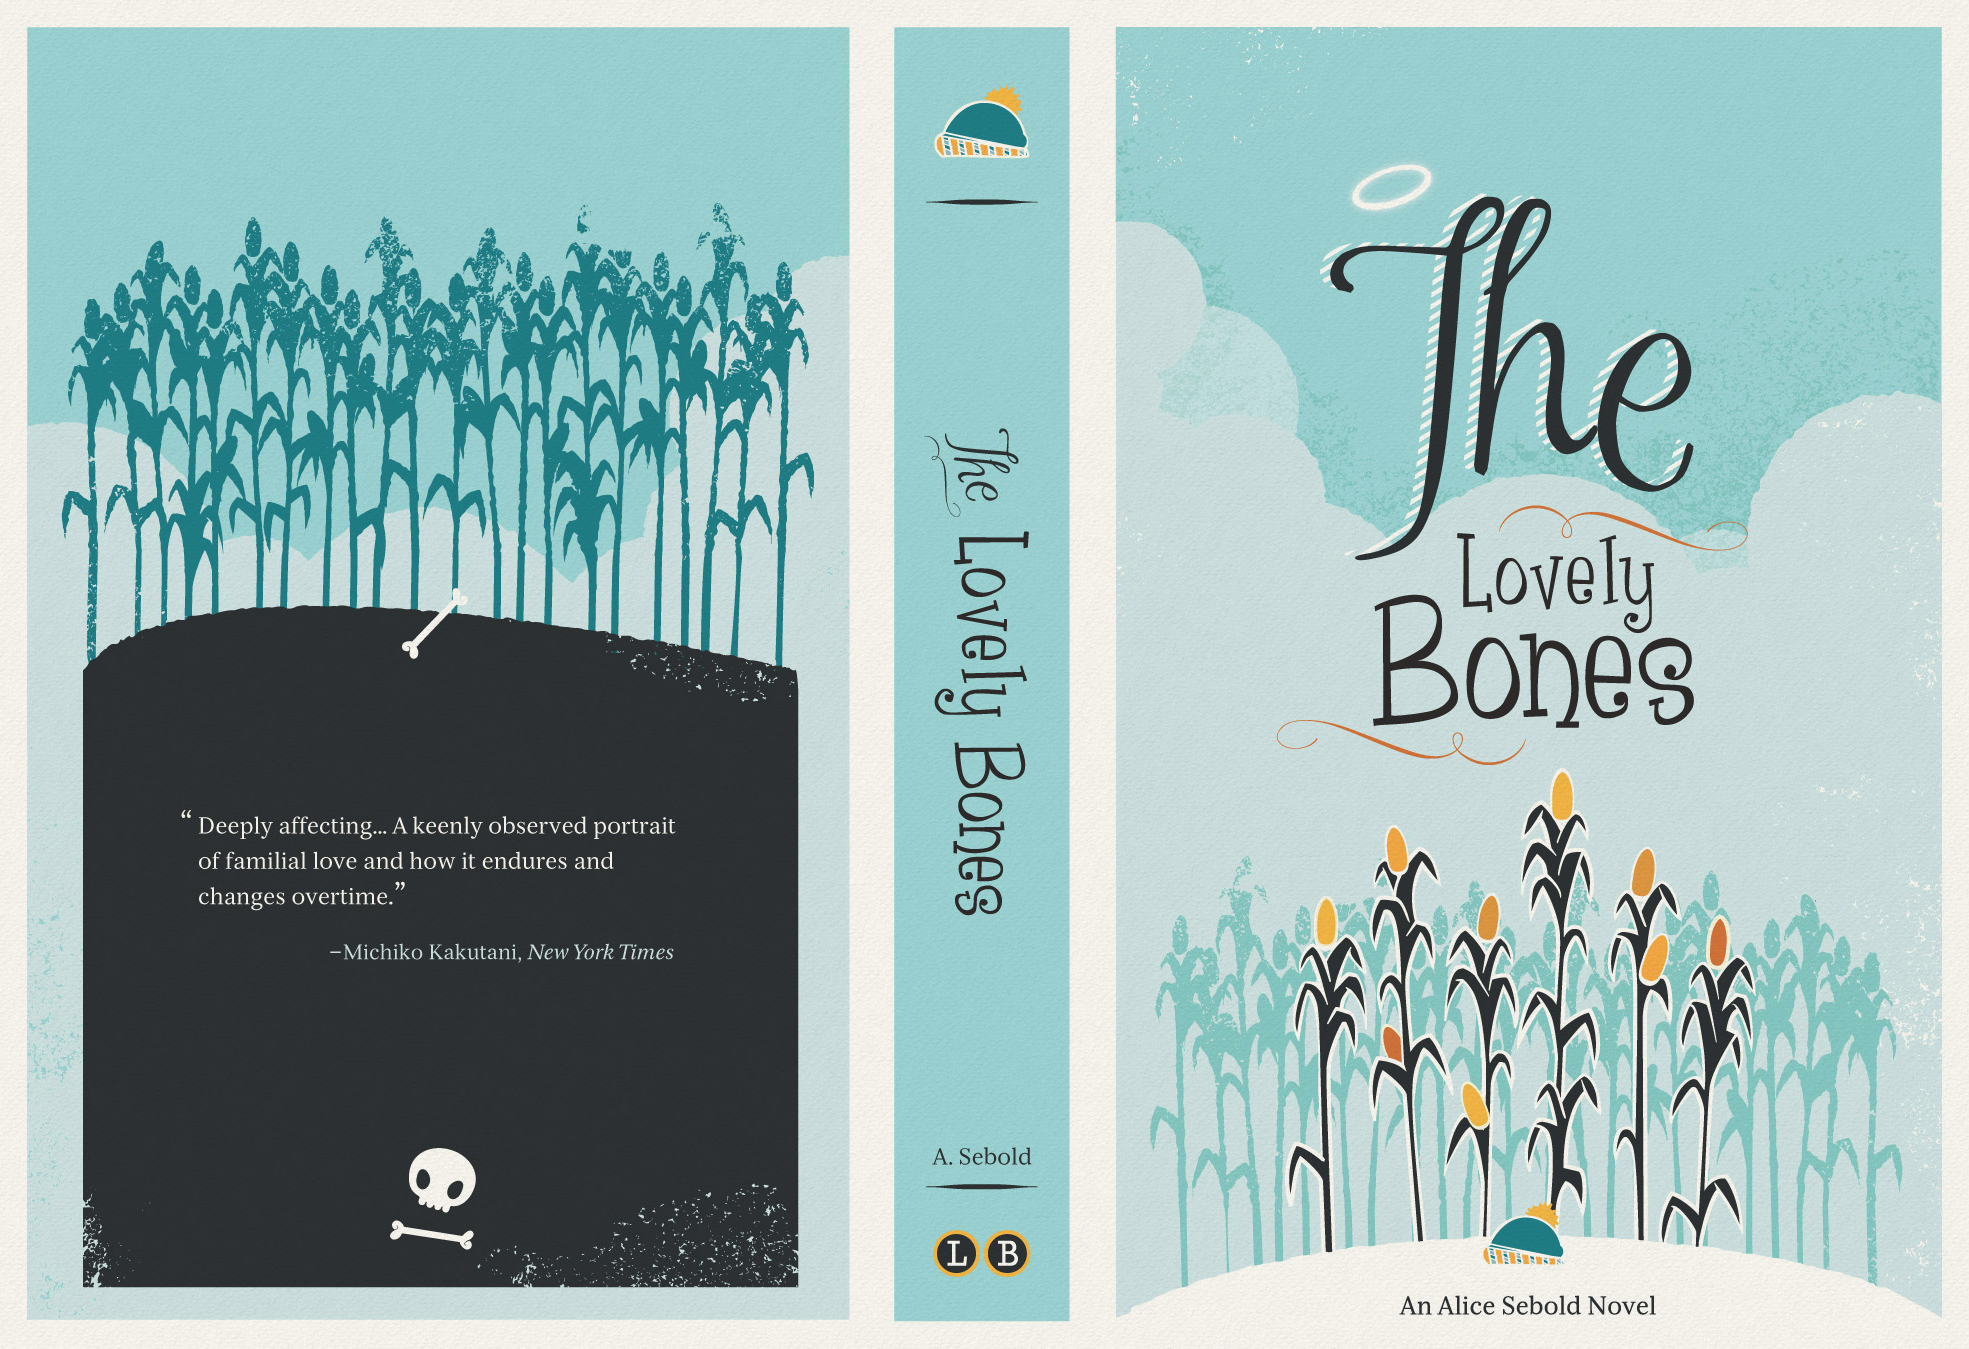 the lovely bones book essay The lovely bones study guide contains a biography of alice sebold, literature essays, quiz questions, major themes, characters, and a full summary and analysis.